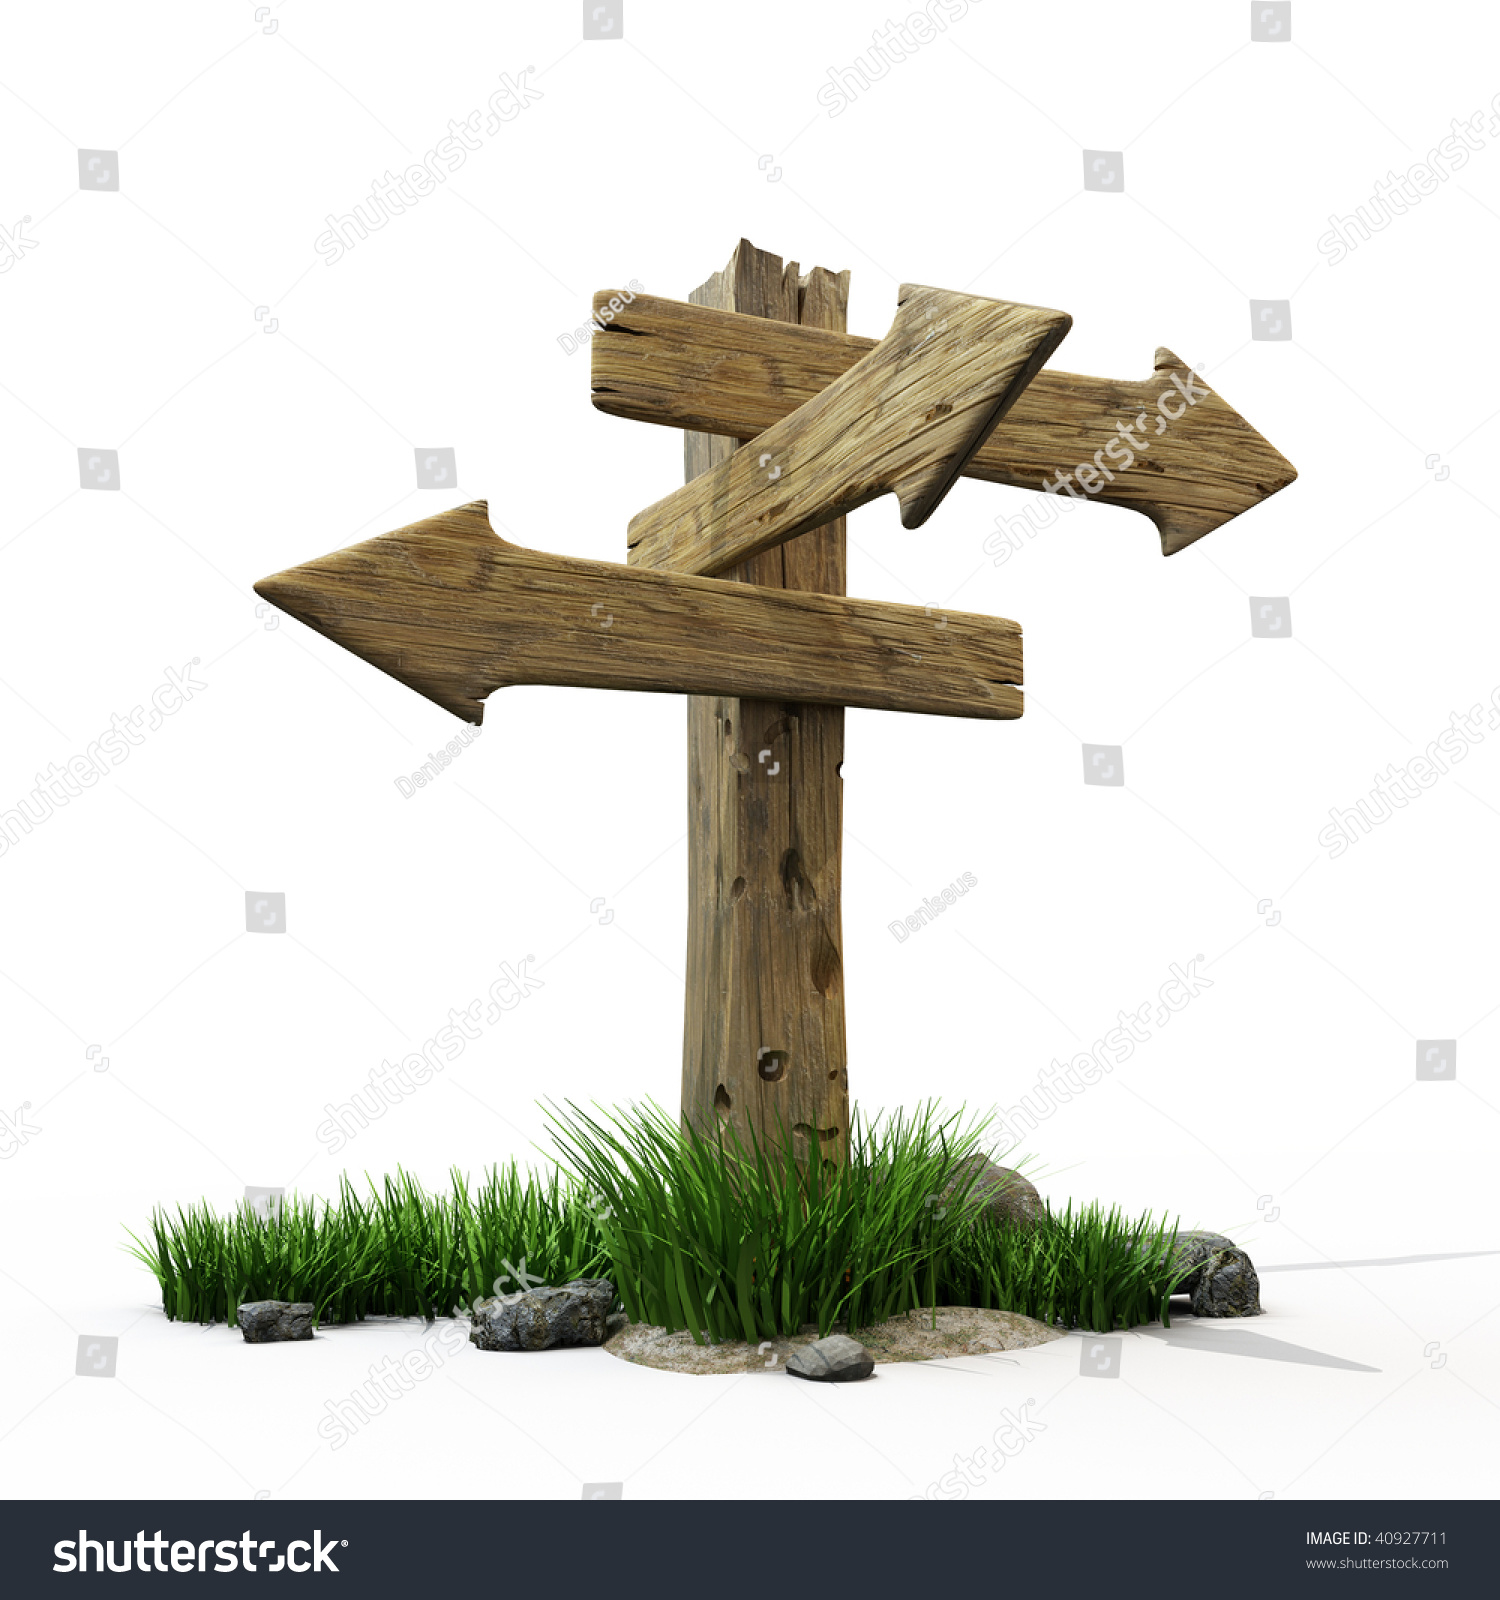 an old wooden road sign stock photo 40927711 shutterstock